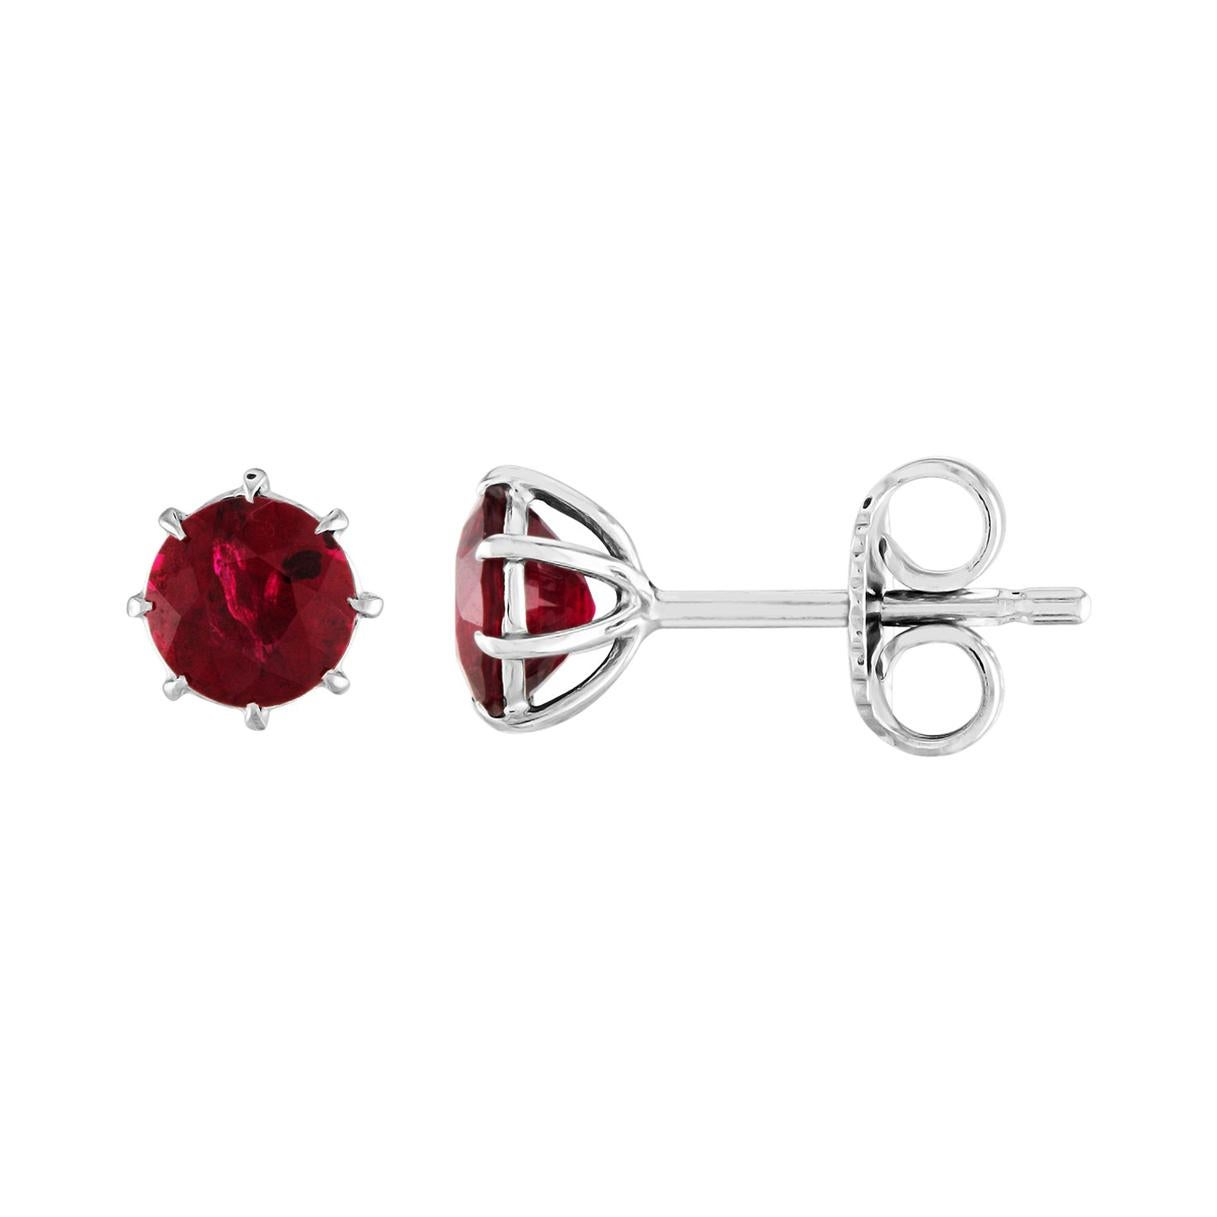 1.90 Carats Ruby Stud White Gold Stud Earrings